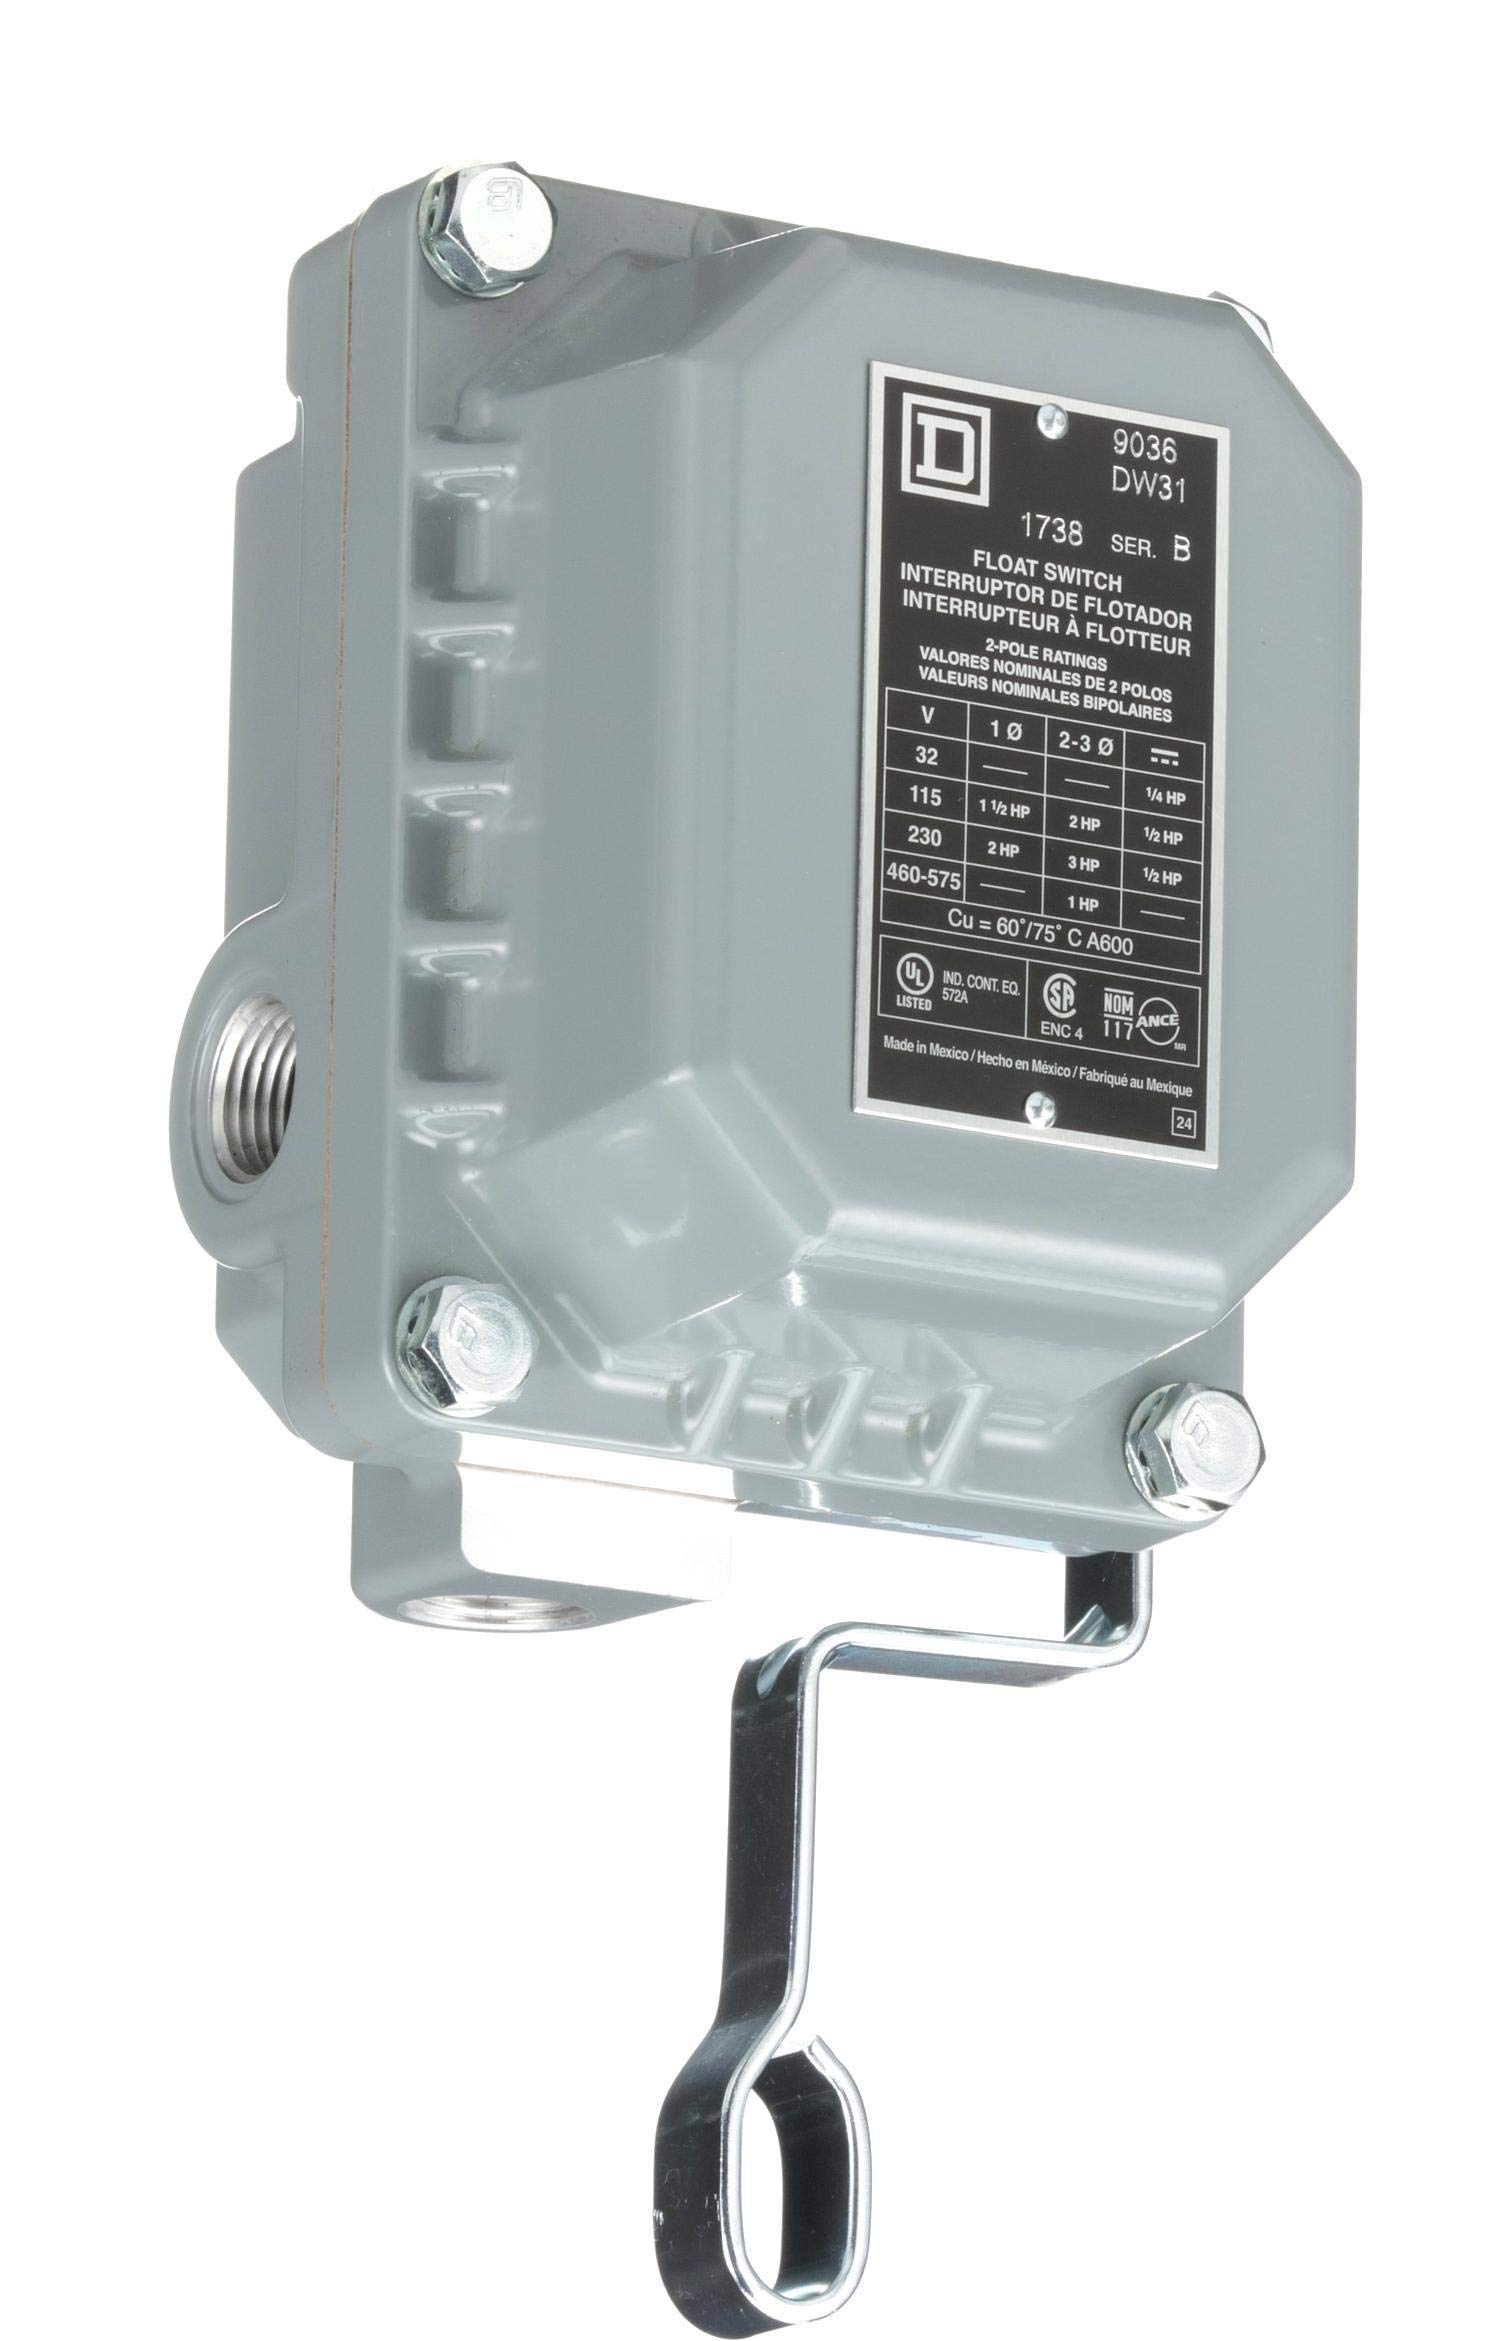 Square D 9036DW31 Commercial Open Tank Float Switch, NEMA 4/7/9, Contacts Close on Rise by Square D by Schneider Electric (Image #2)